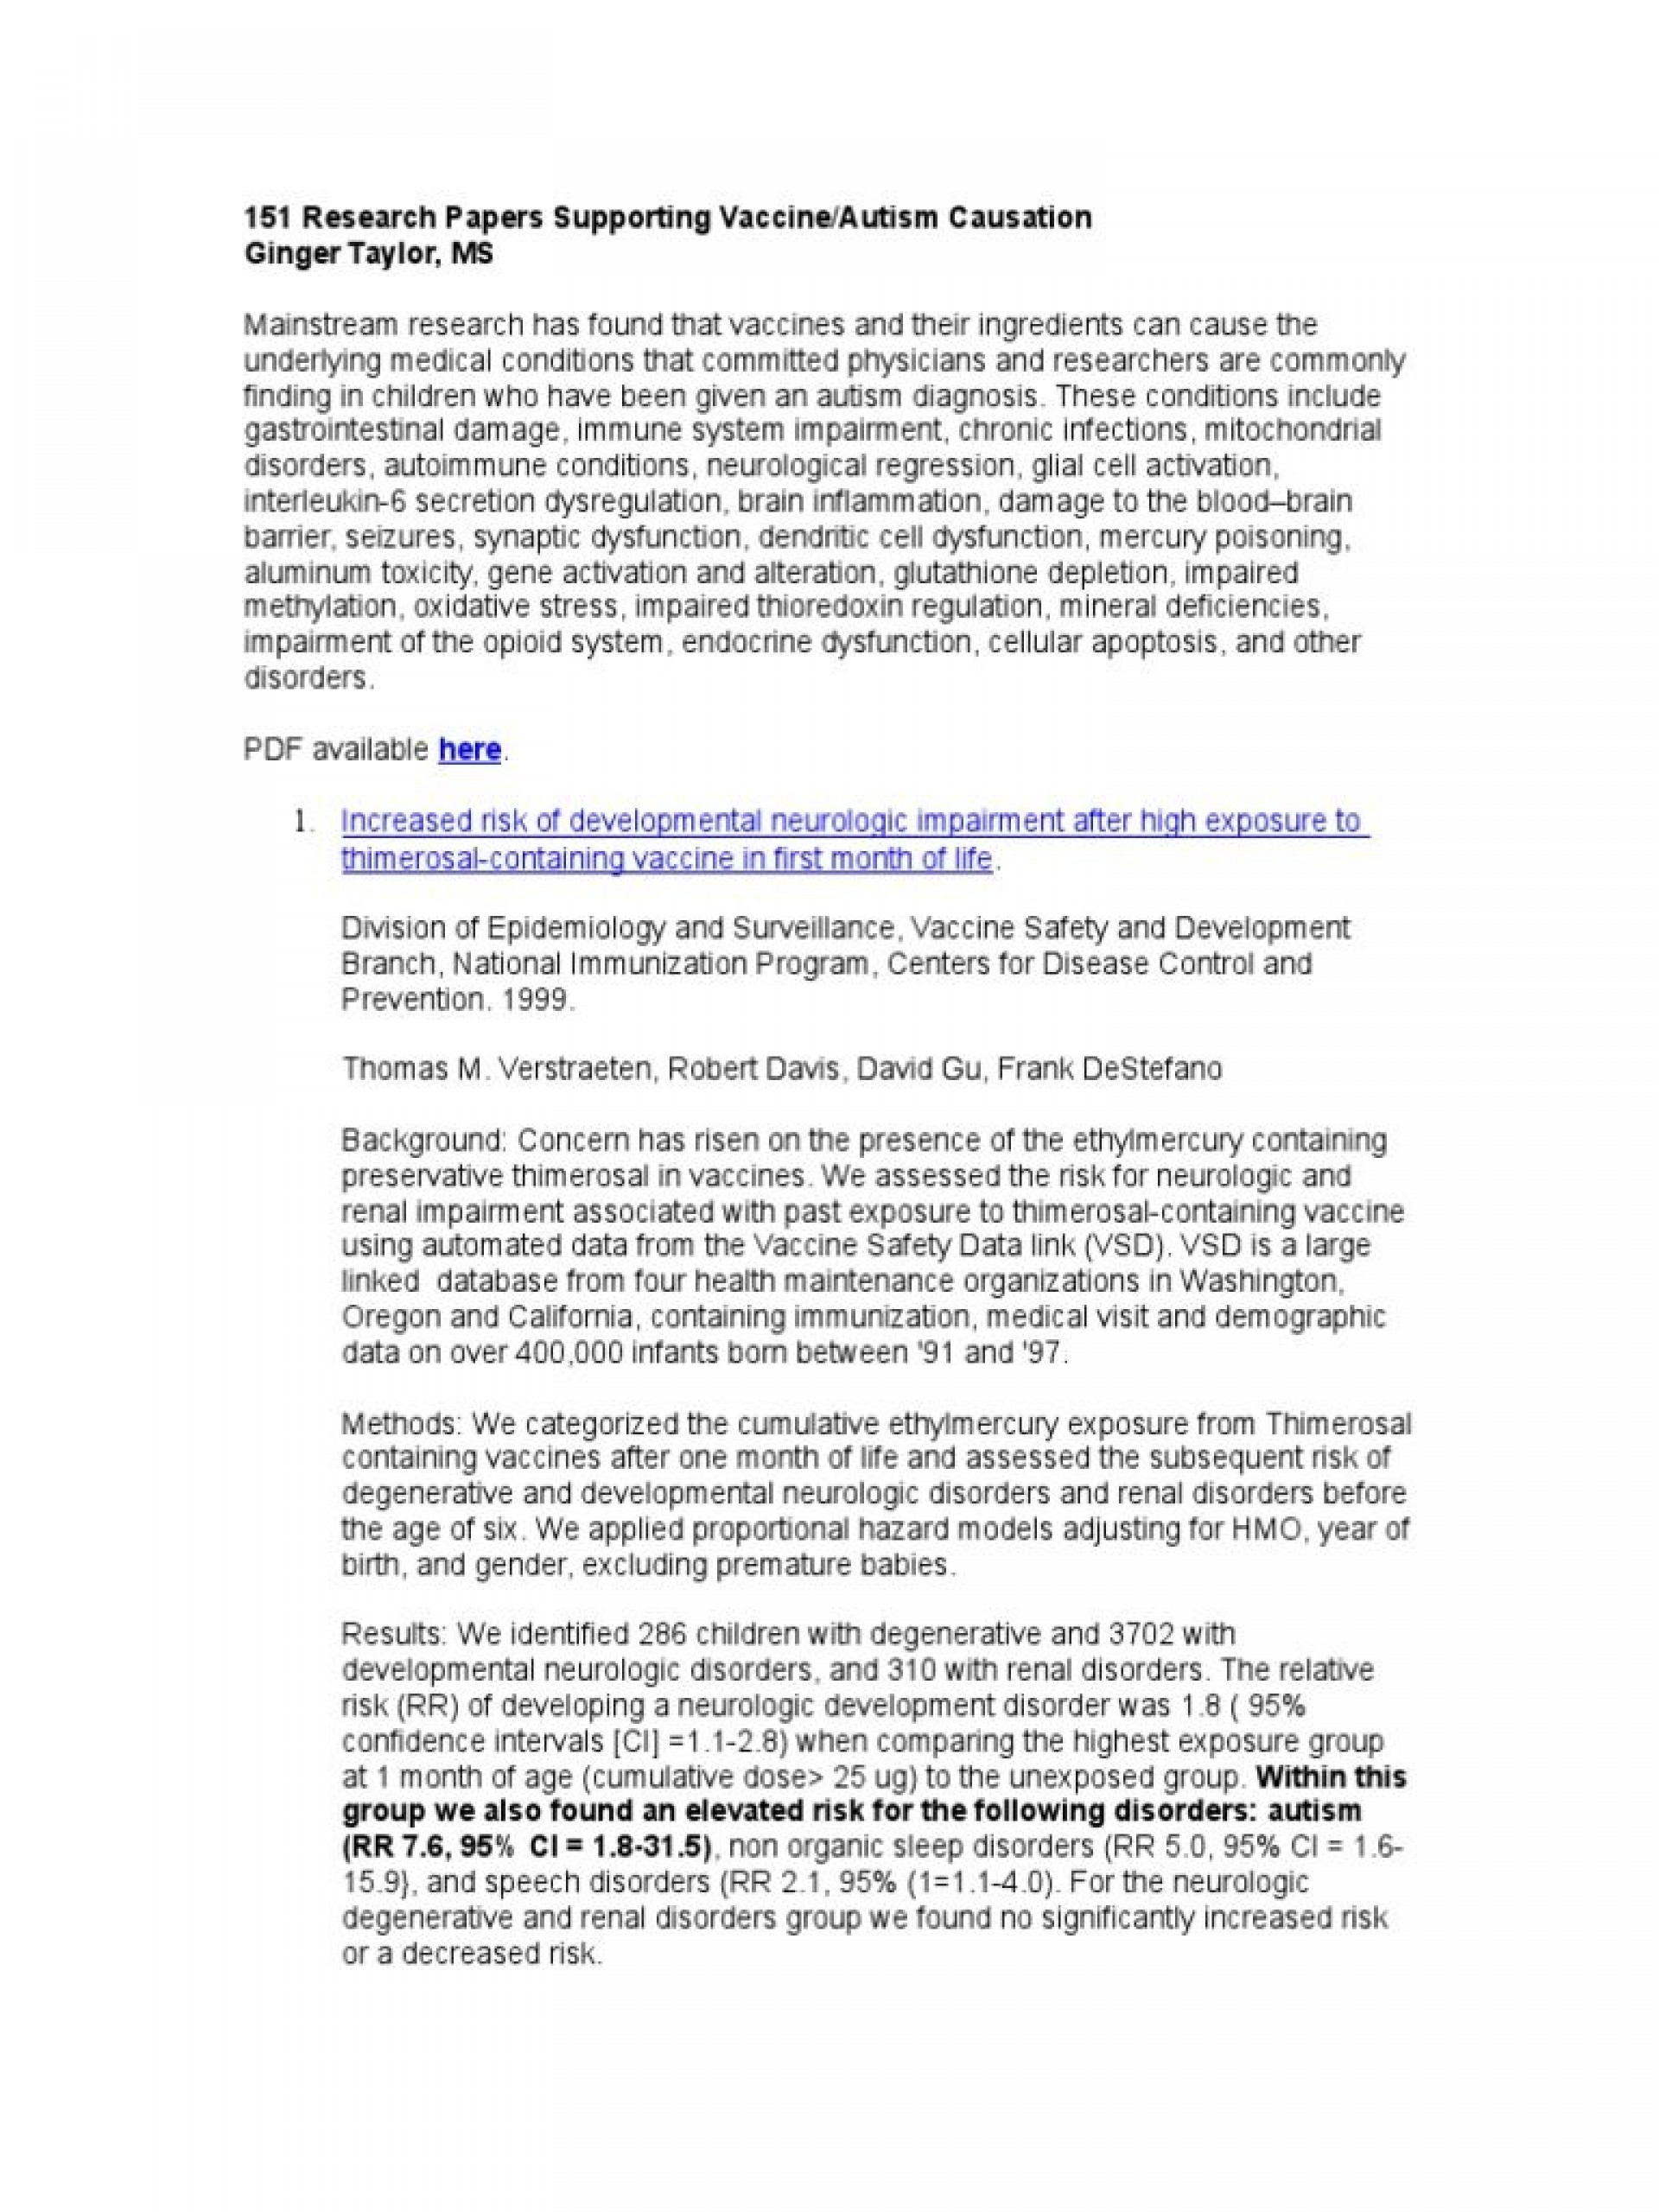 024 Research Paper Best Site To Download Papers Unbelievable Free How From Researchgate Springer Sciencedirect 1920